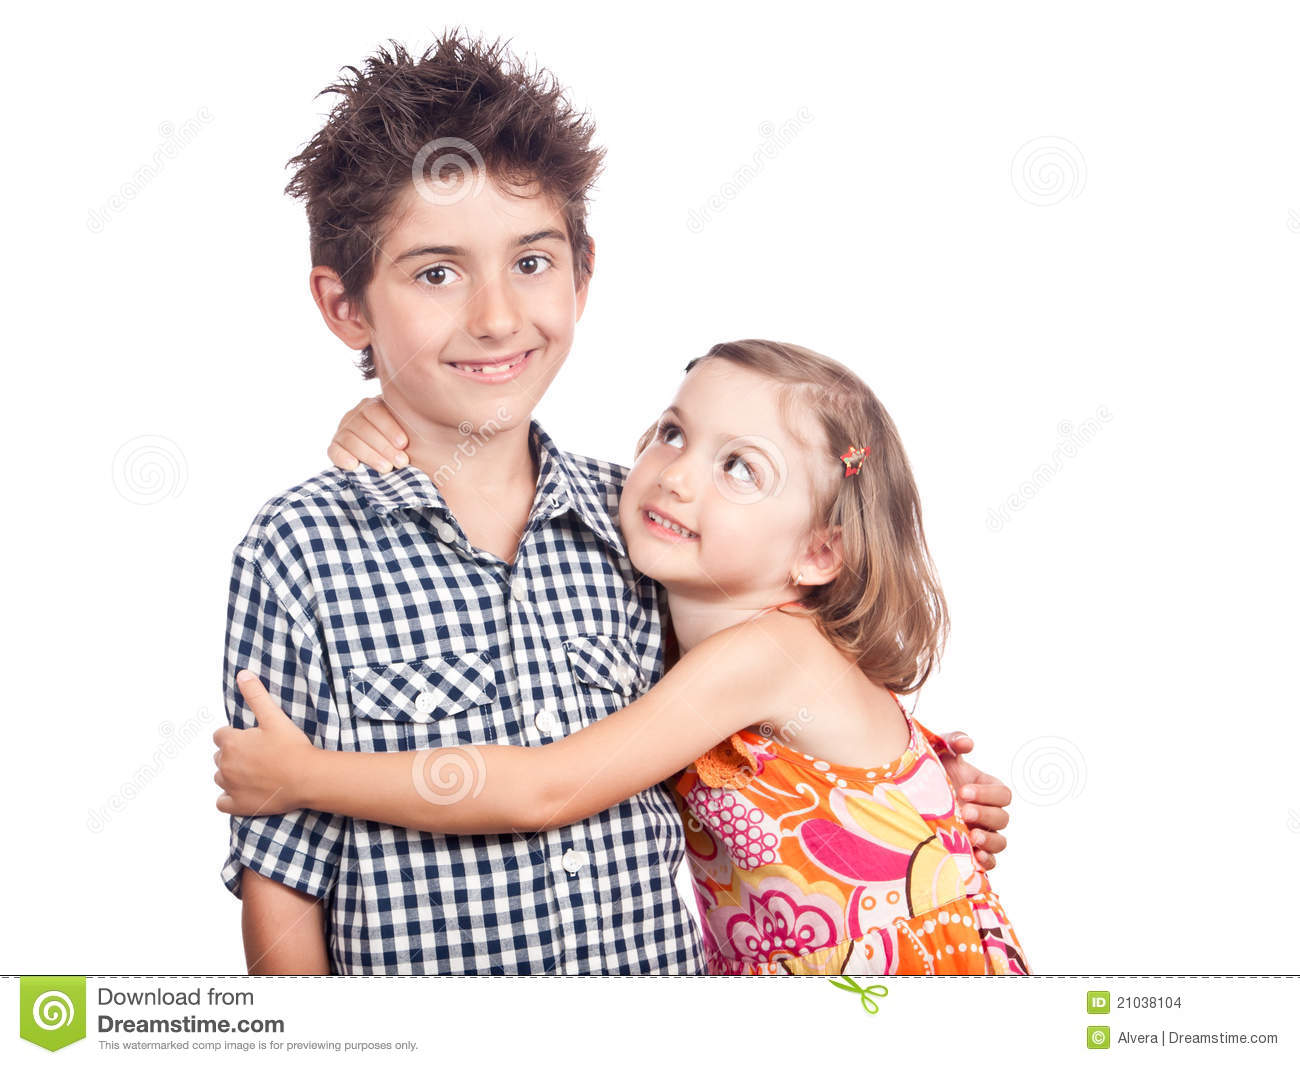 Guy and girl best friends kids hugging kids isolated on white